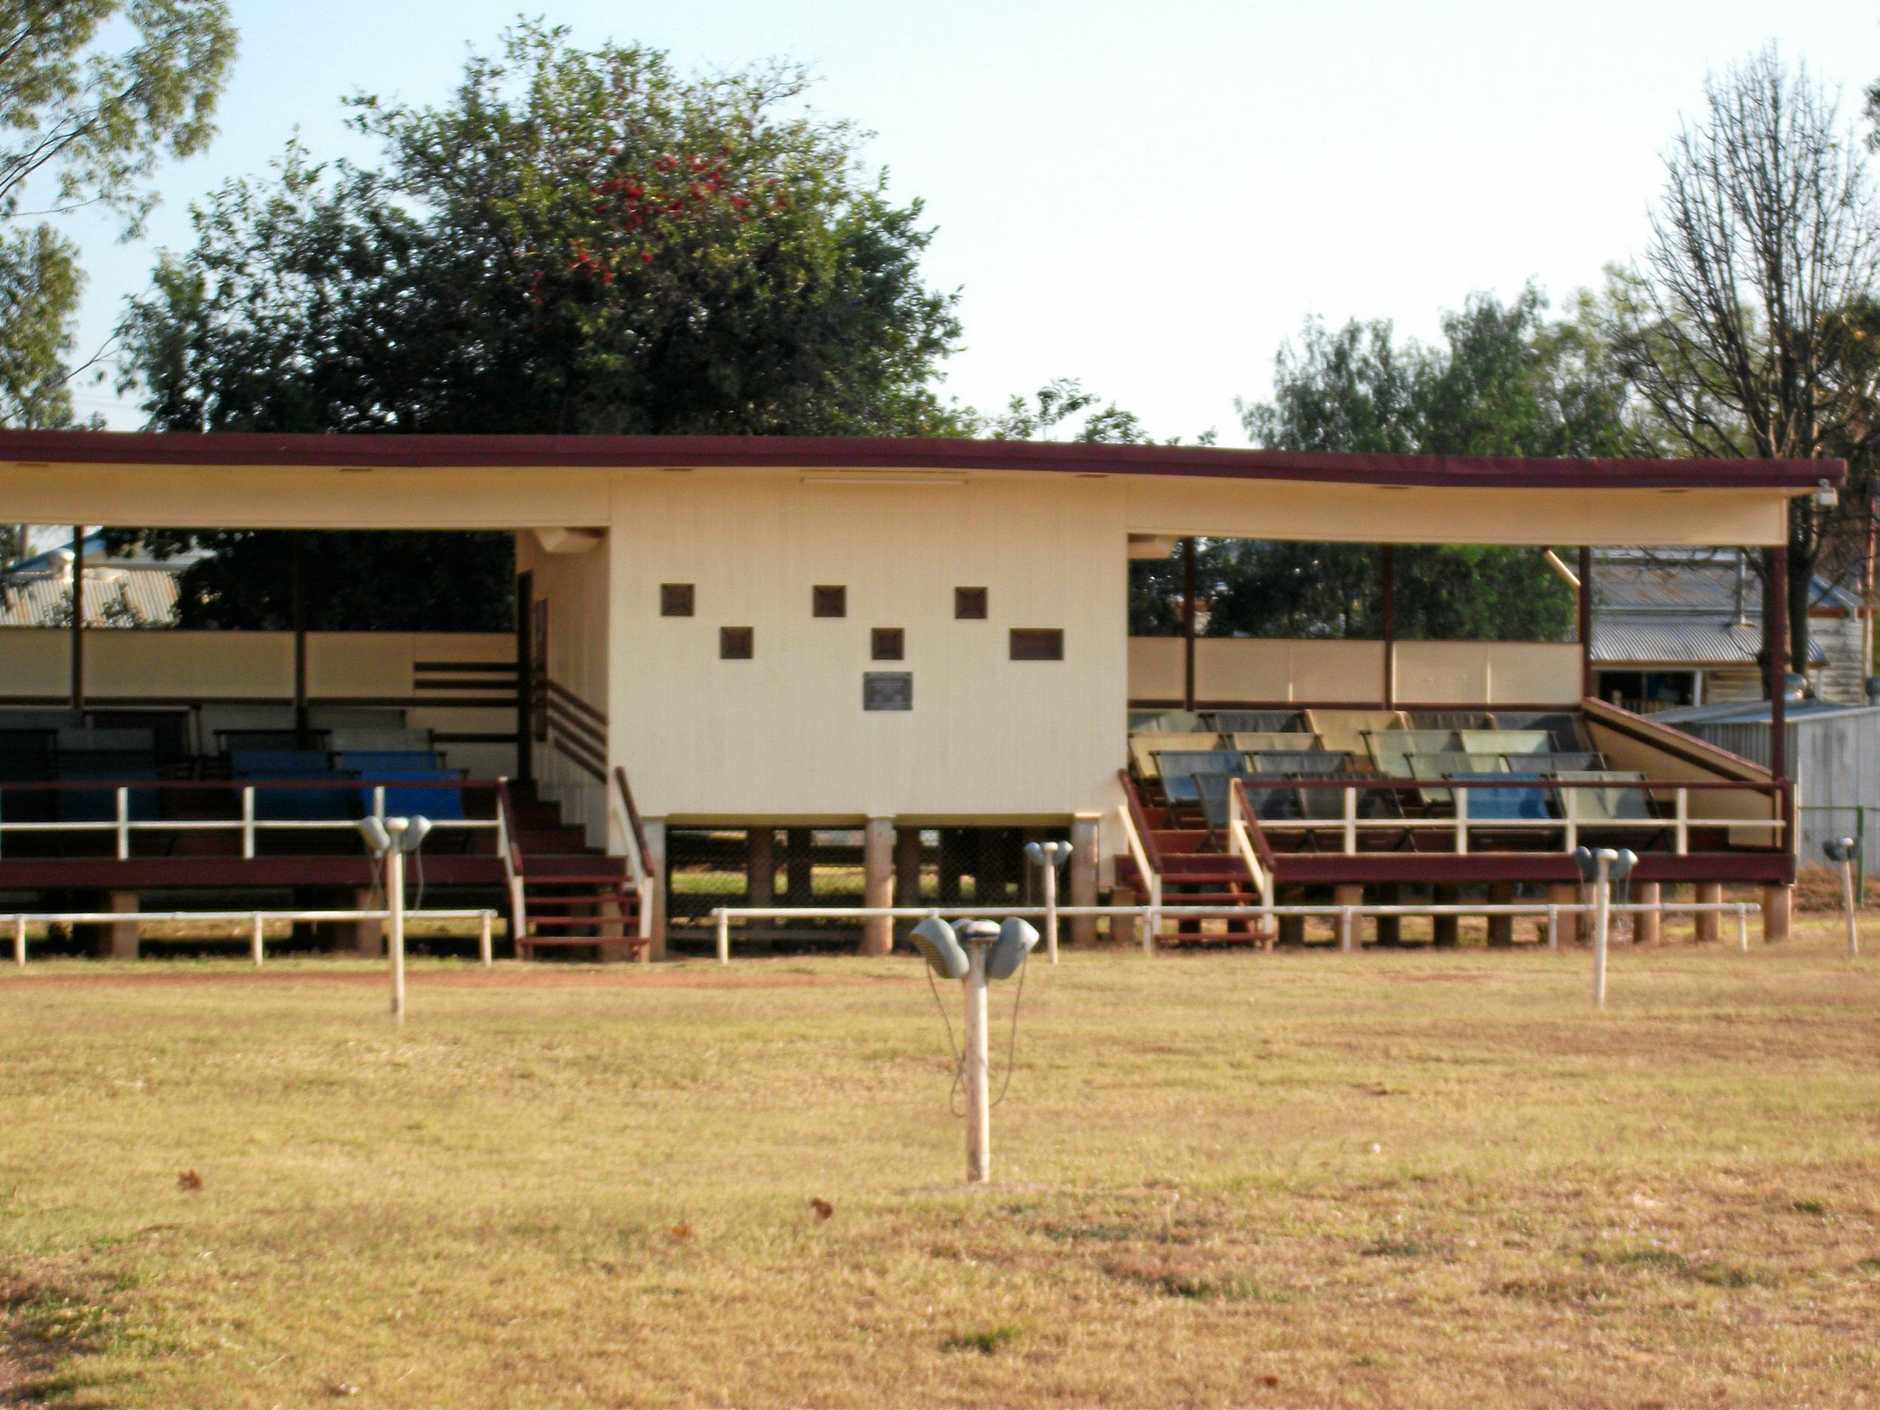 The Jericho Drive-In was built by Barcaldine Regional Council and opened on July 26, 1969.